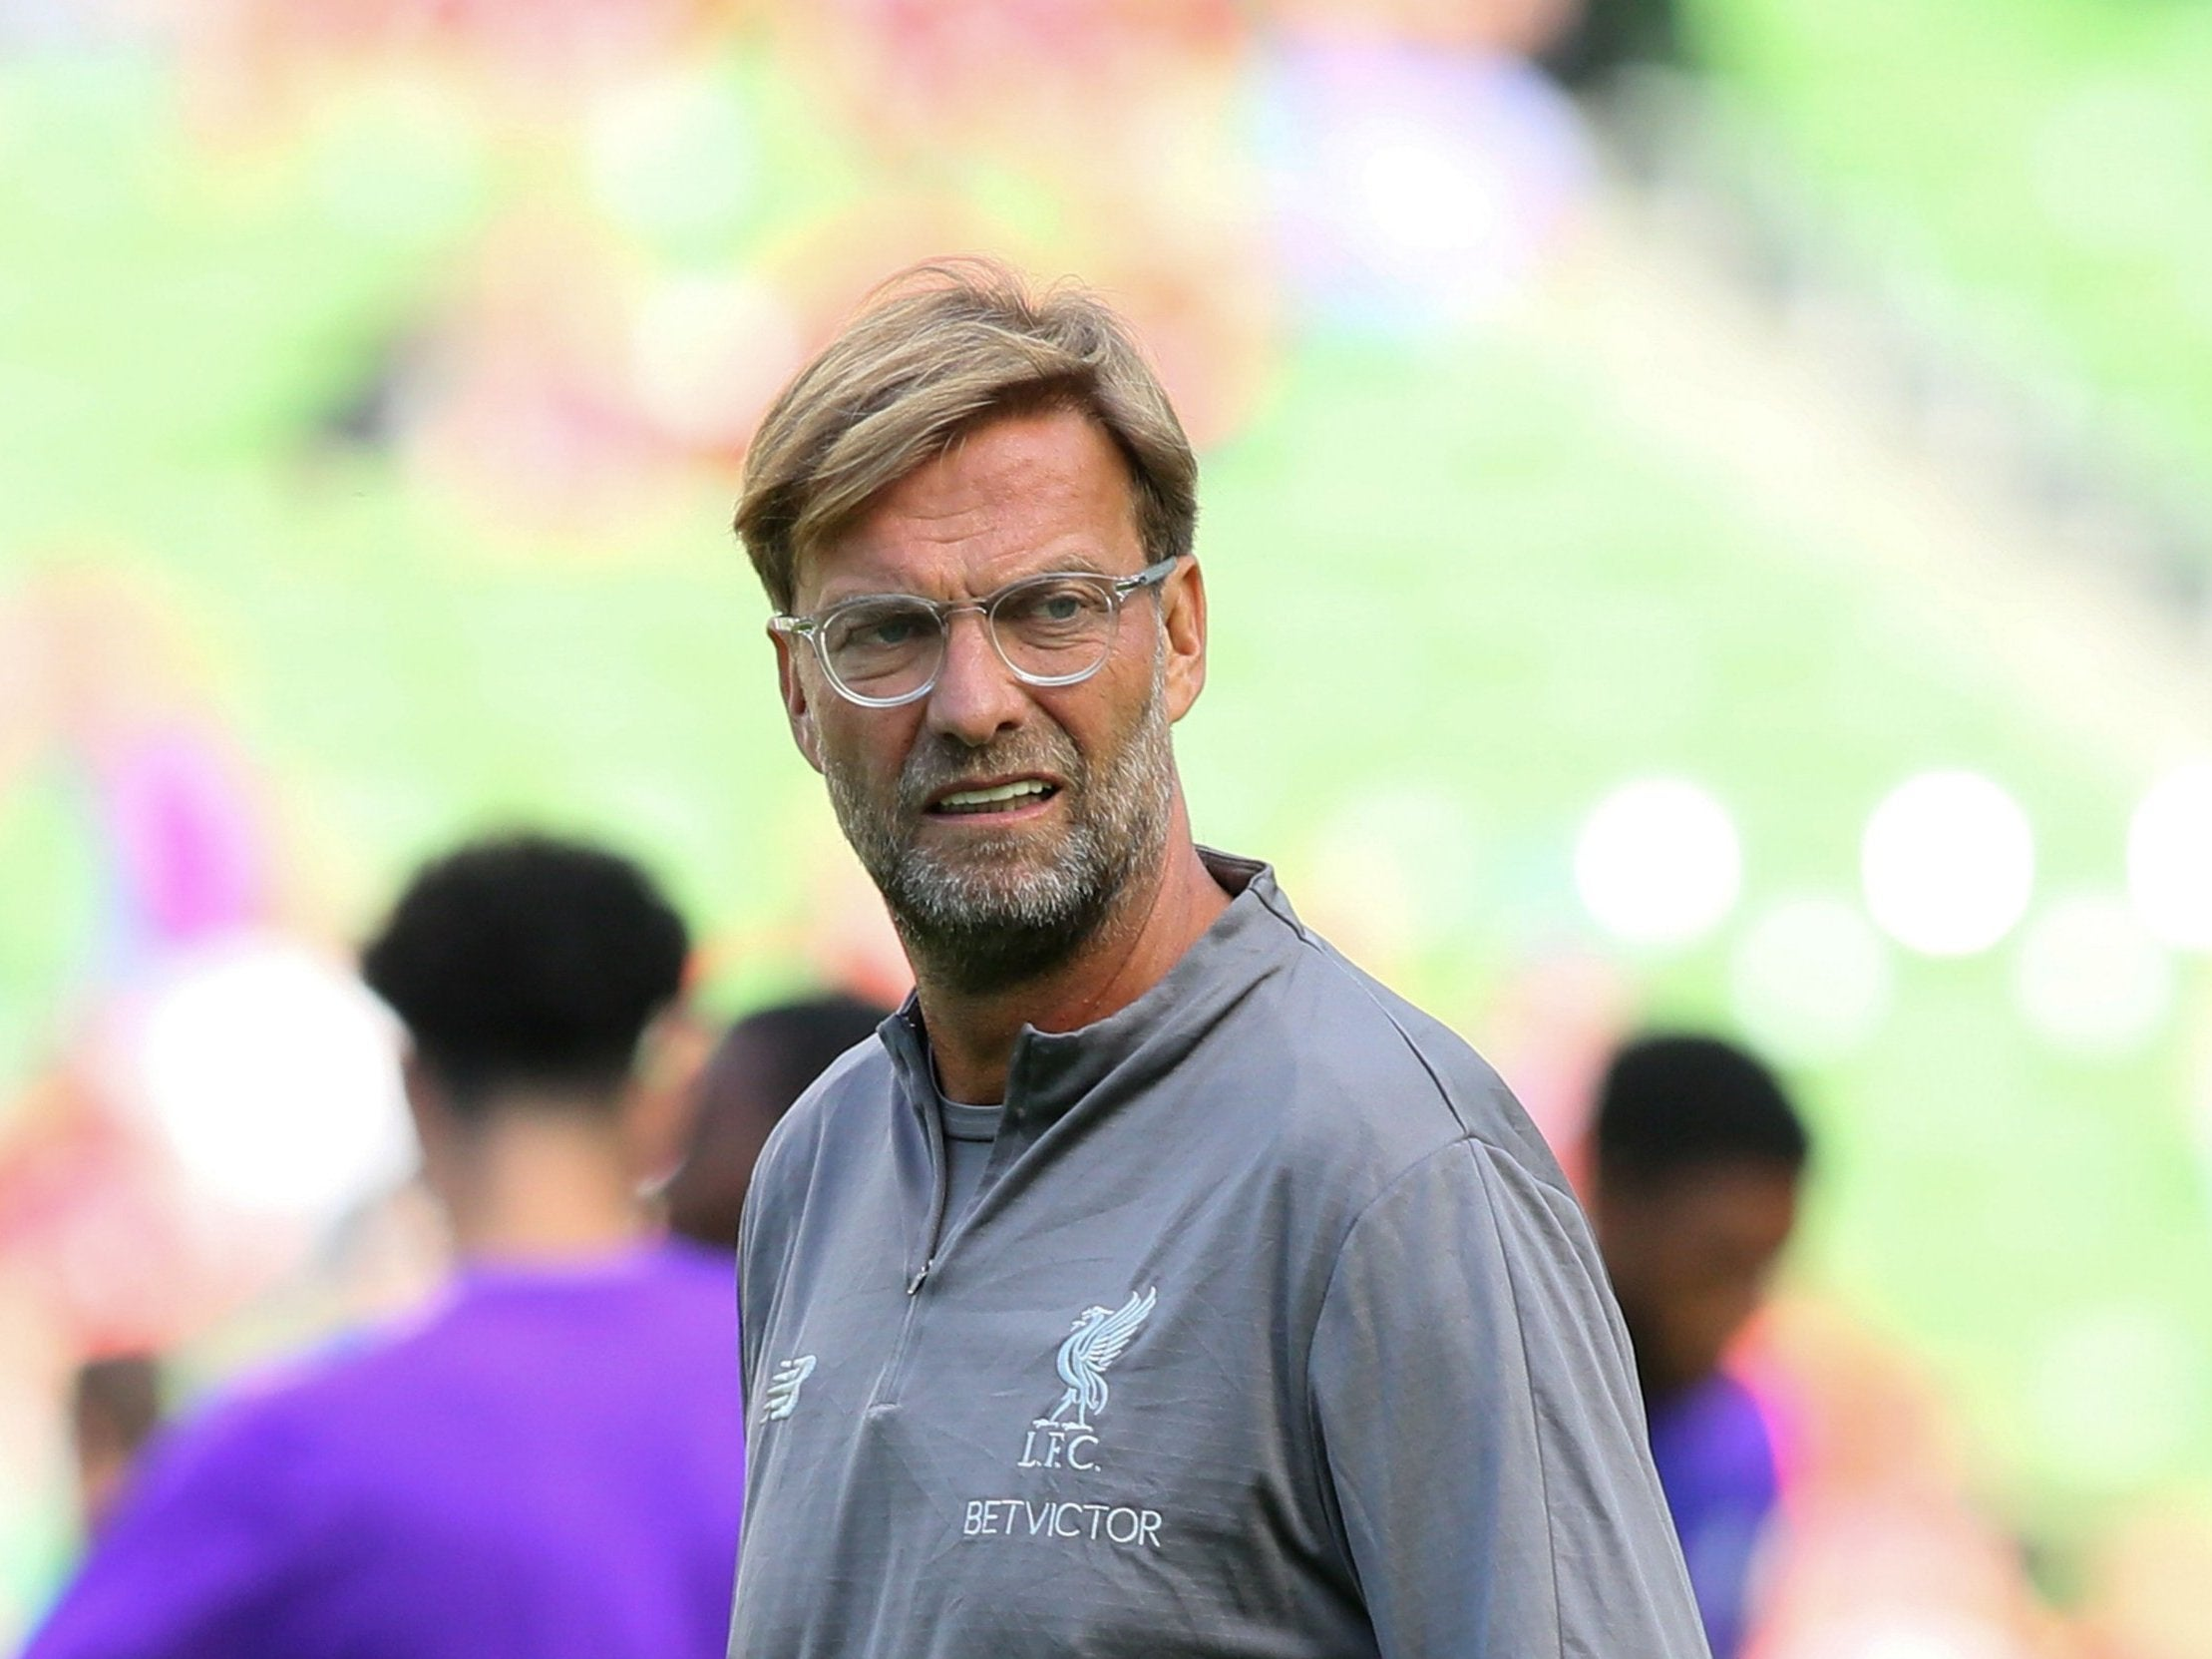 Jurgen Klopp concedes expectations are high at Liverpool after strong summer window